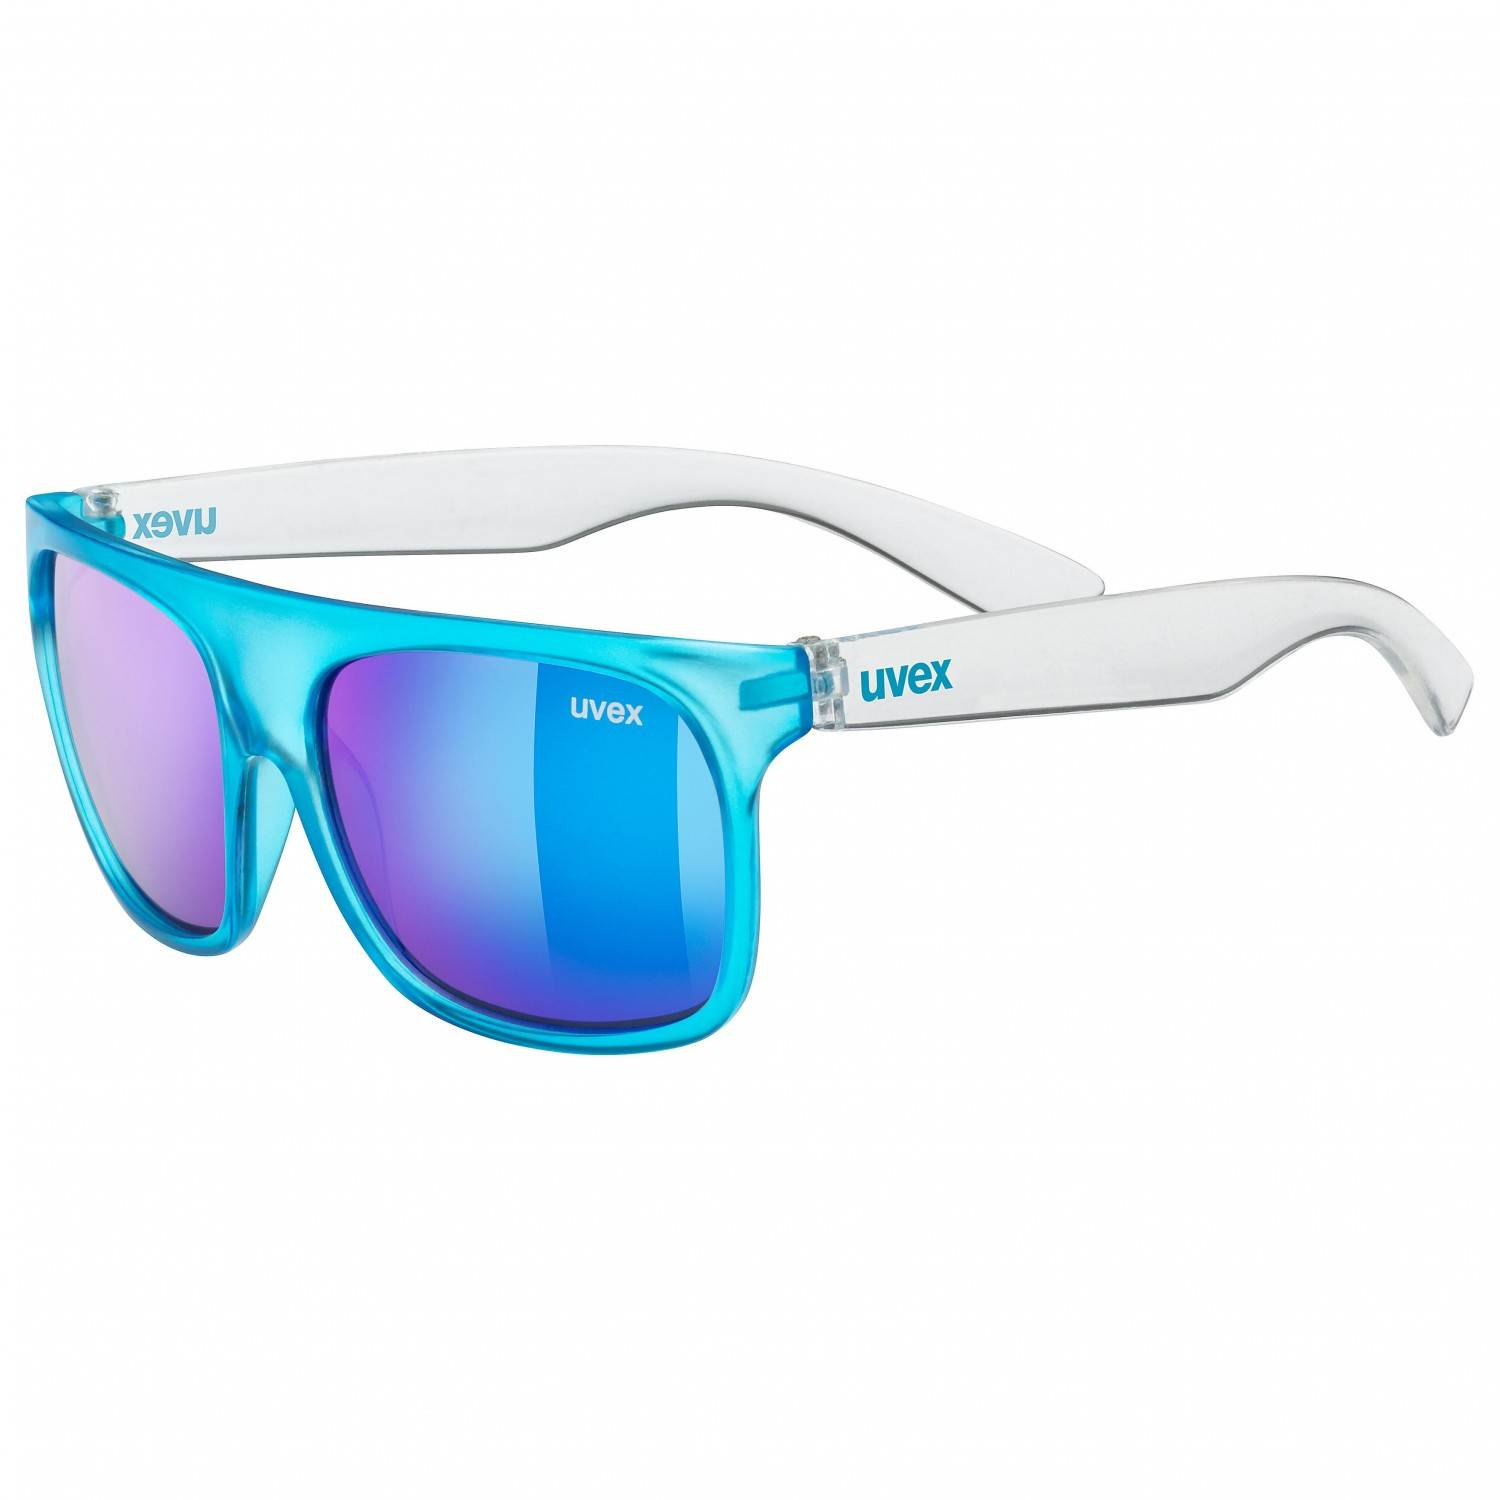 uvex-sportstyle-511-kinder-sportbrille-farbe-4916-blue-clear-mirror-blue-s3-